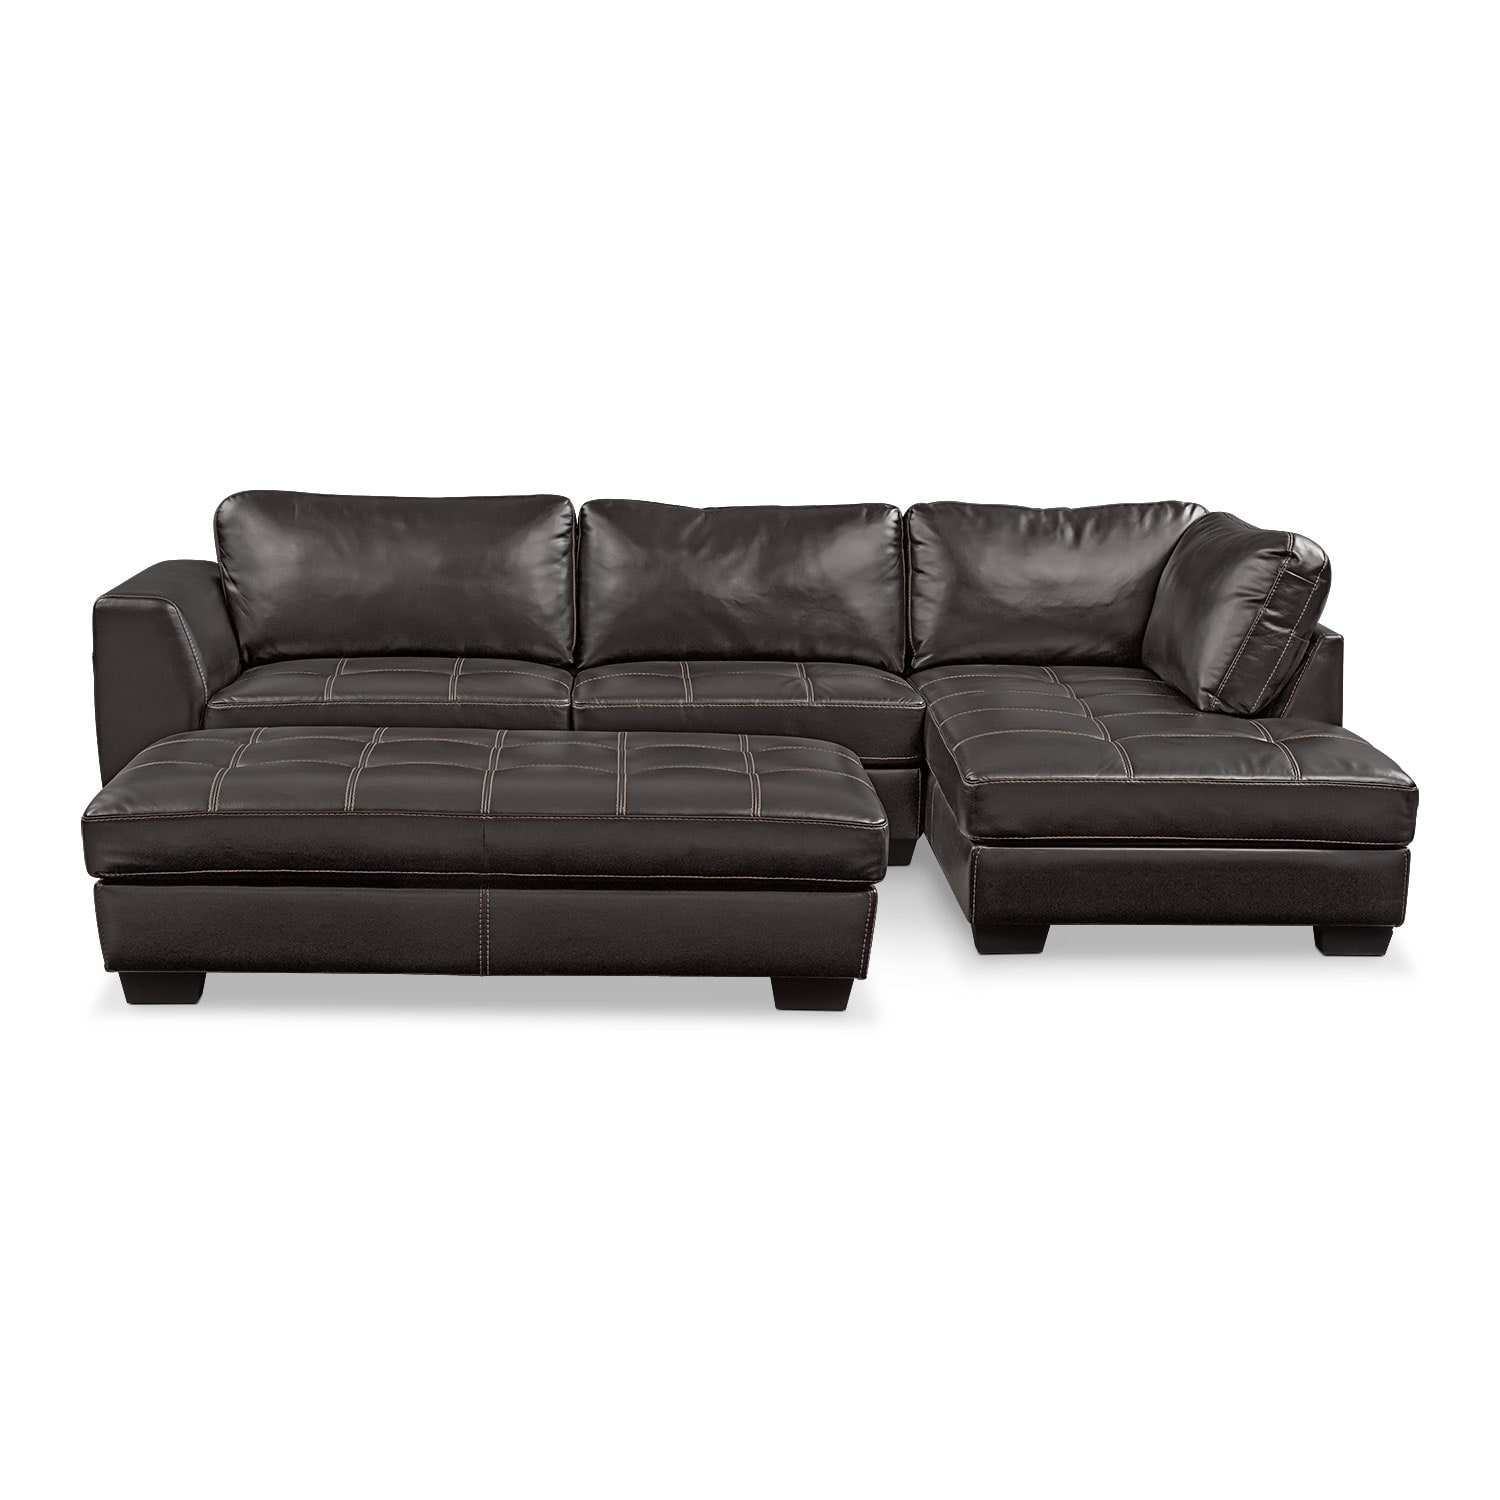 Santana 2-Piece Sectional with Right-Facing Chaise Plus FREE Cocktail Ottoman - Black